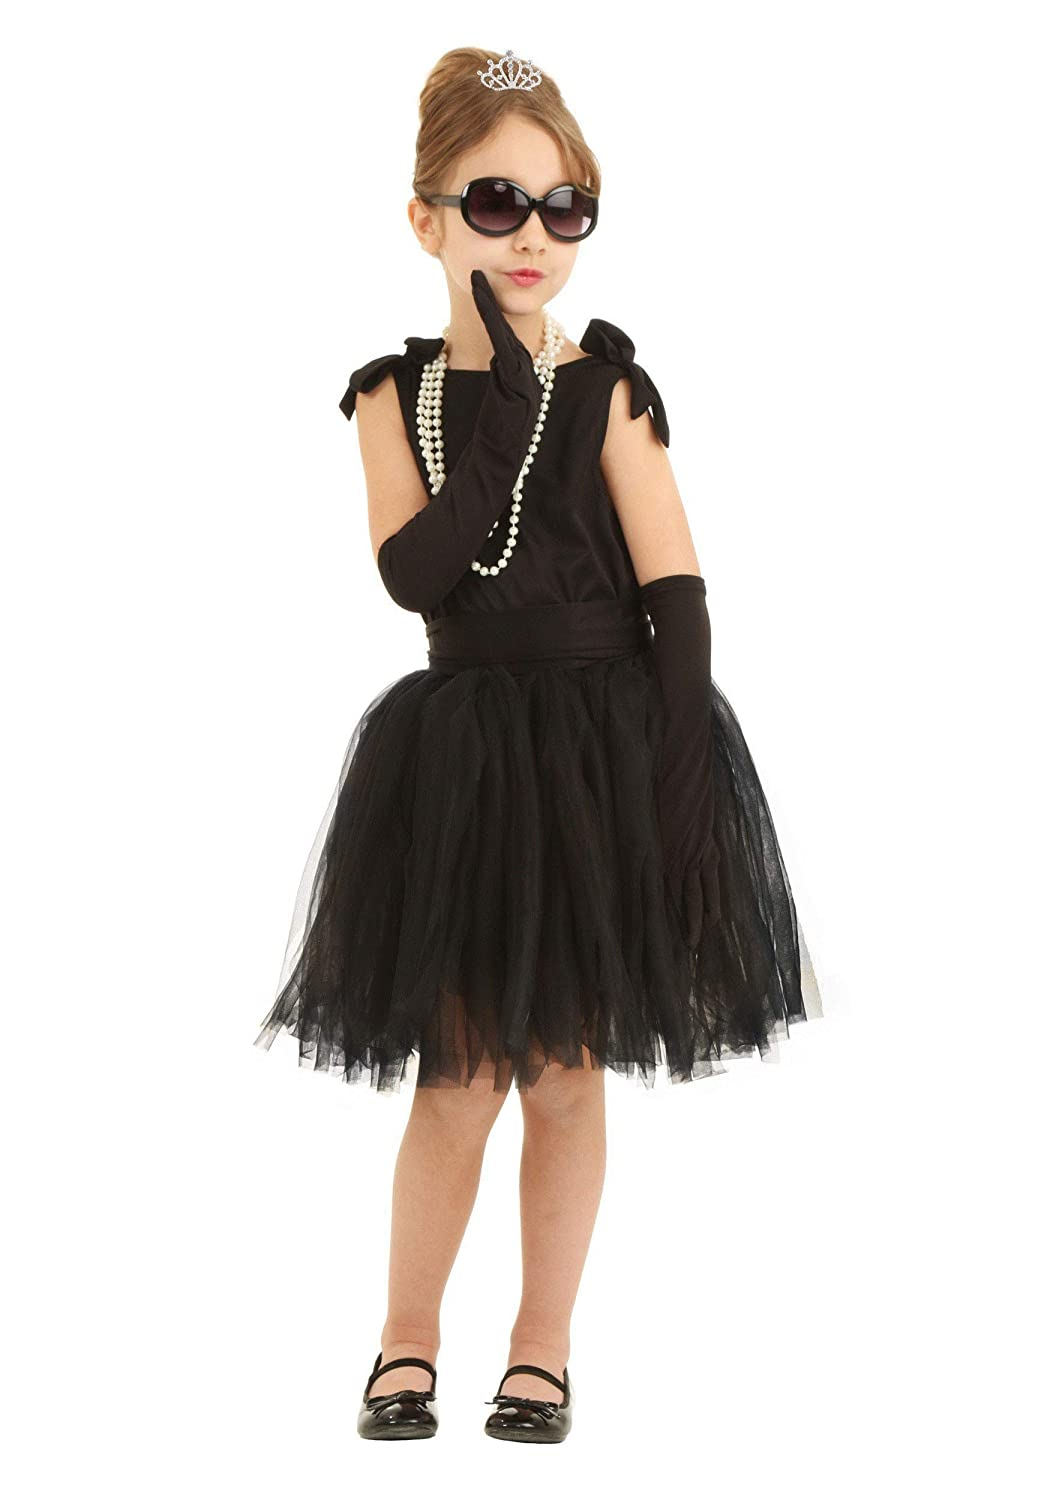 Kids 1950s Clothing & Costumes: Girls, Boys, Toddlers Child Breakfast at Tiffanys Holly Golightly Costume $29.99 AT vintagedancer.com